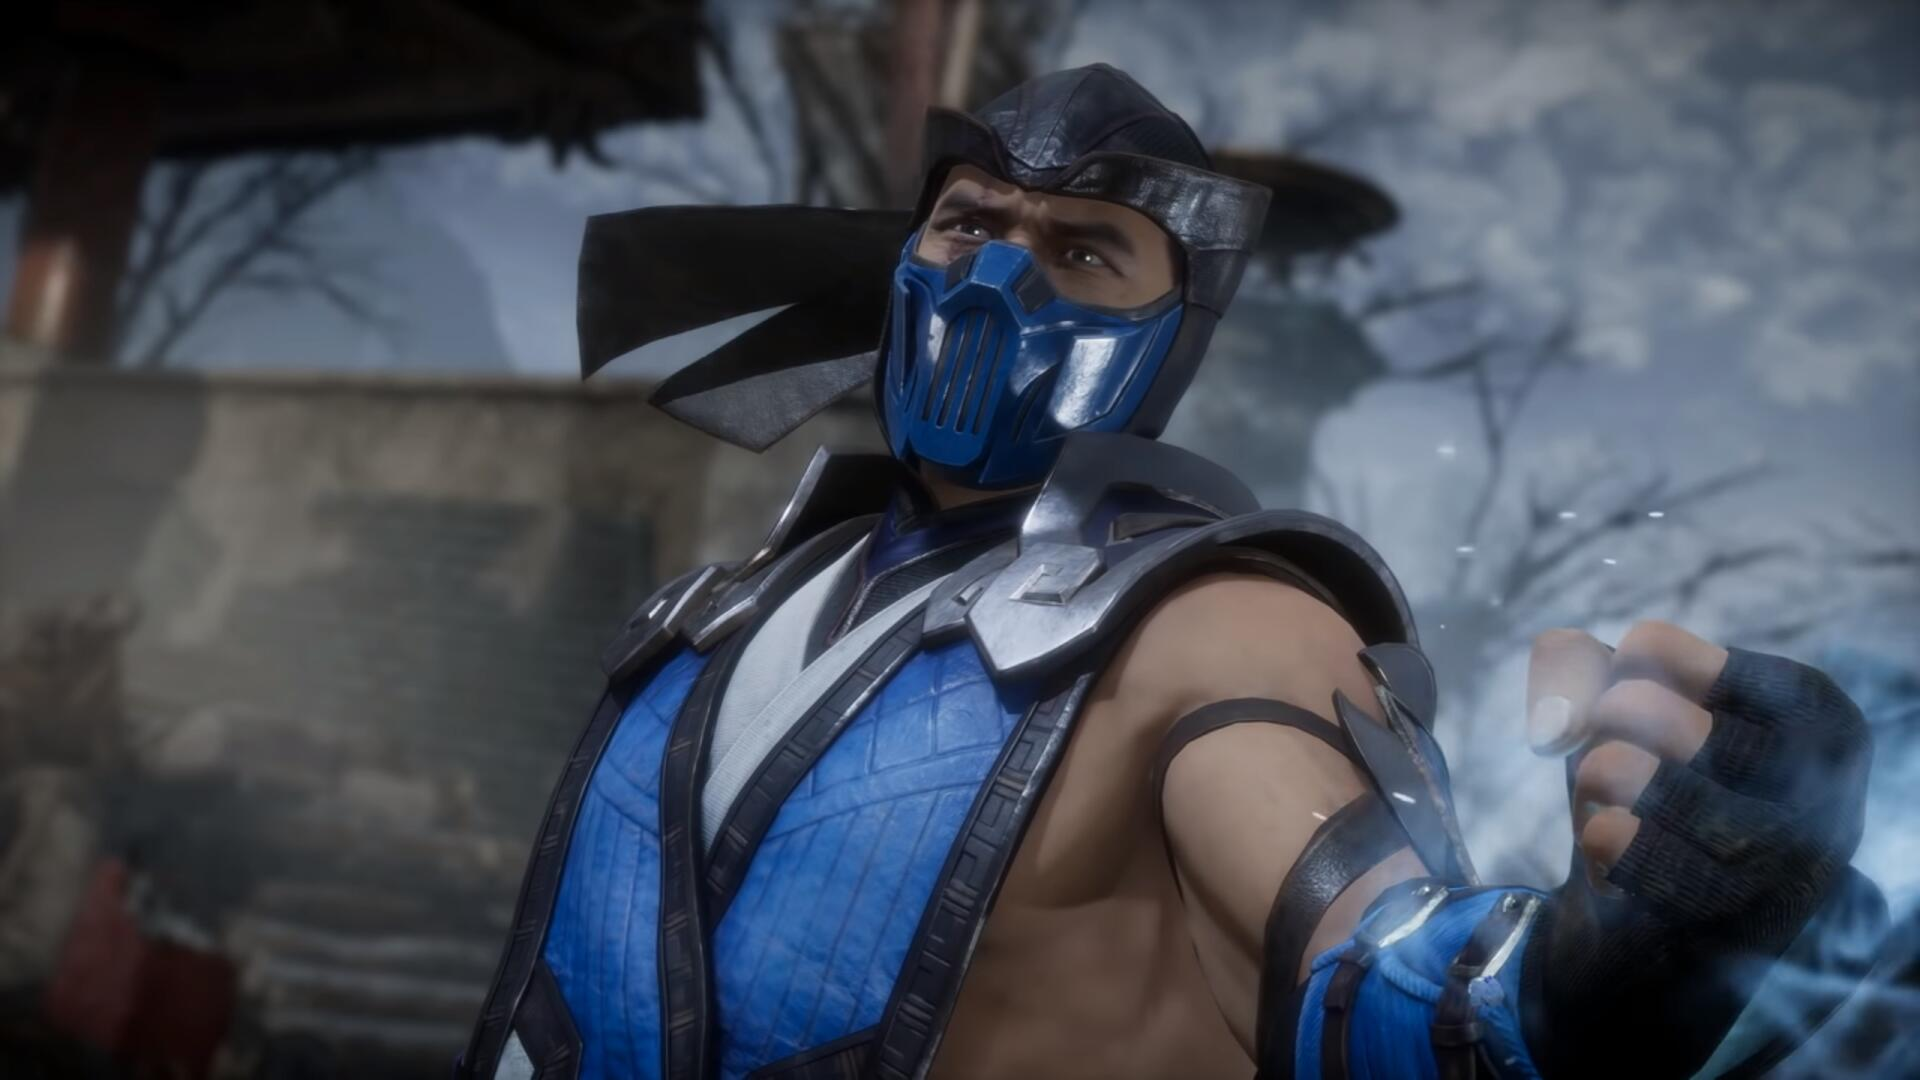 NPD: 2019 Is a Record Year for Fighting Game Sales